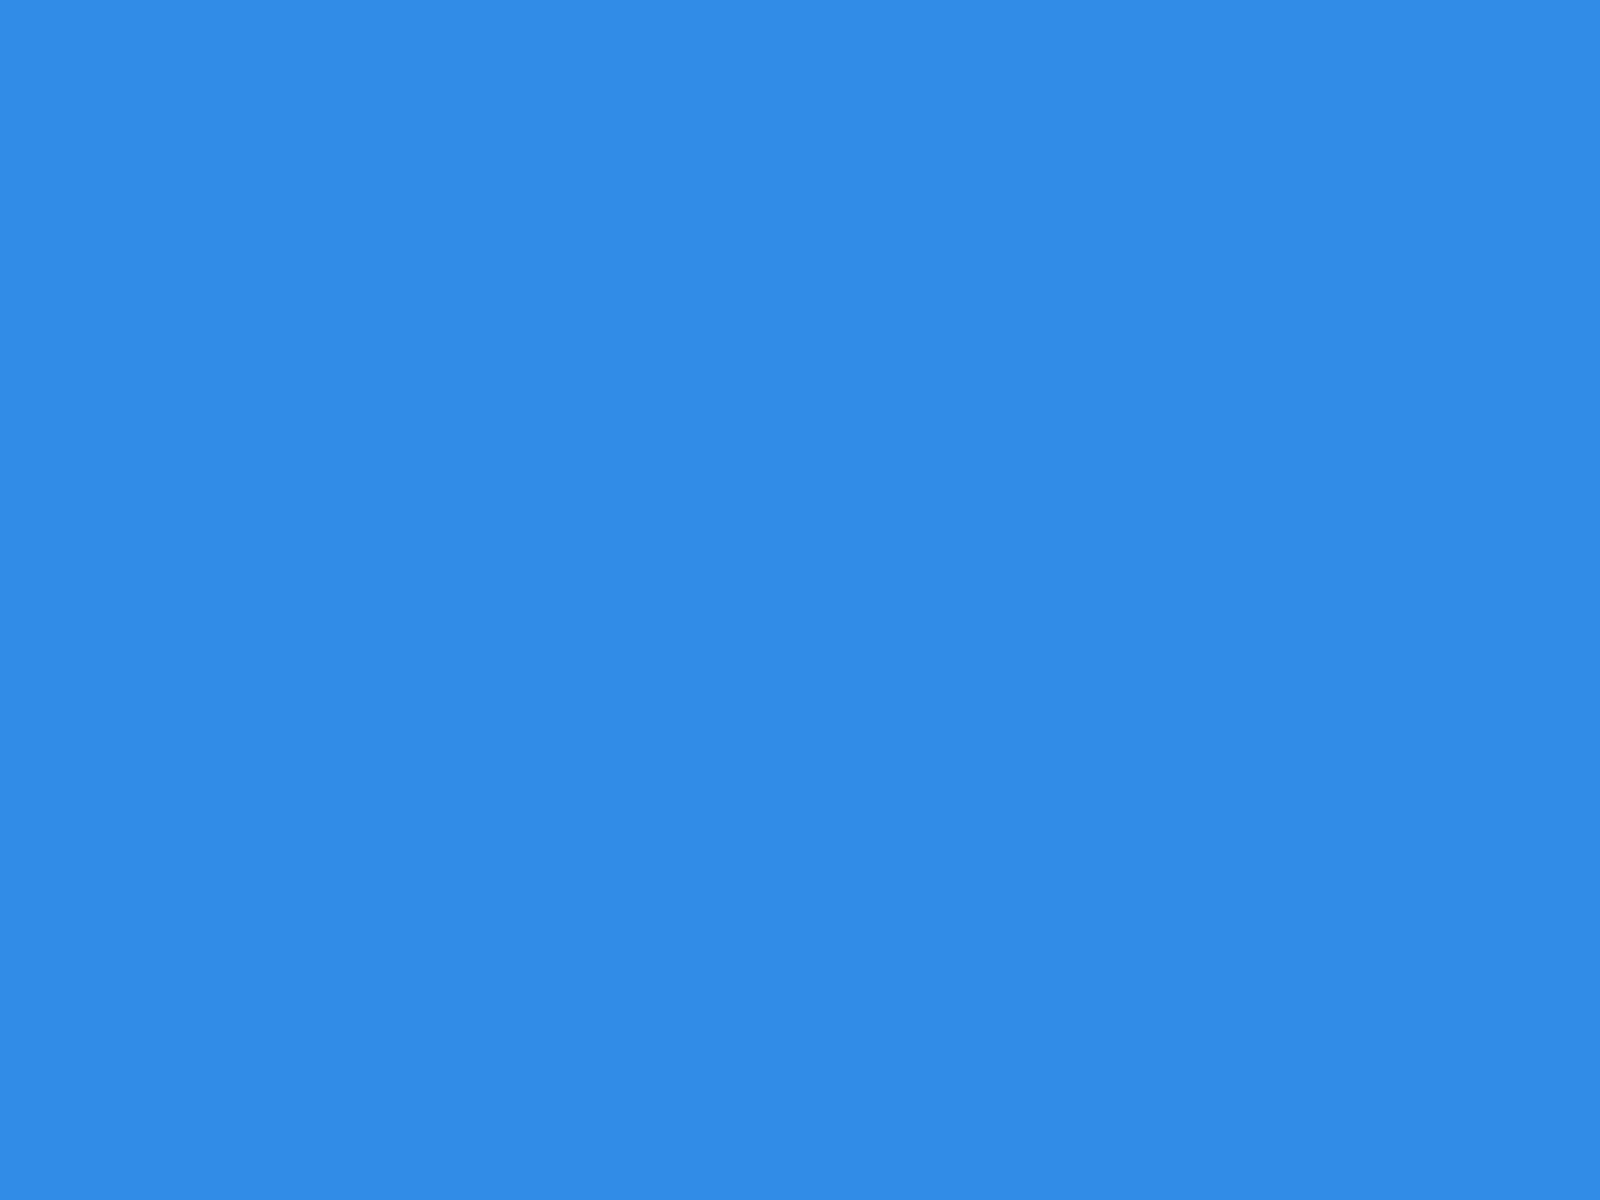 1600x1200 Bleu De France Solid Color Background